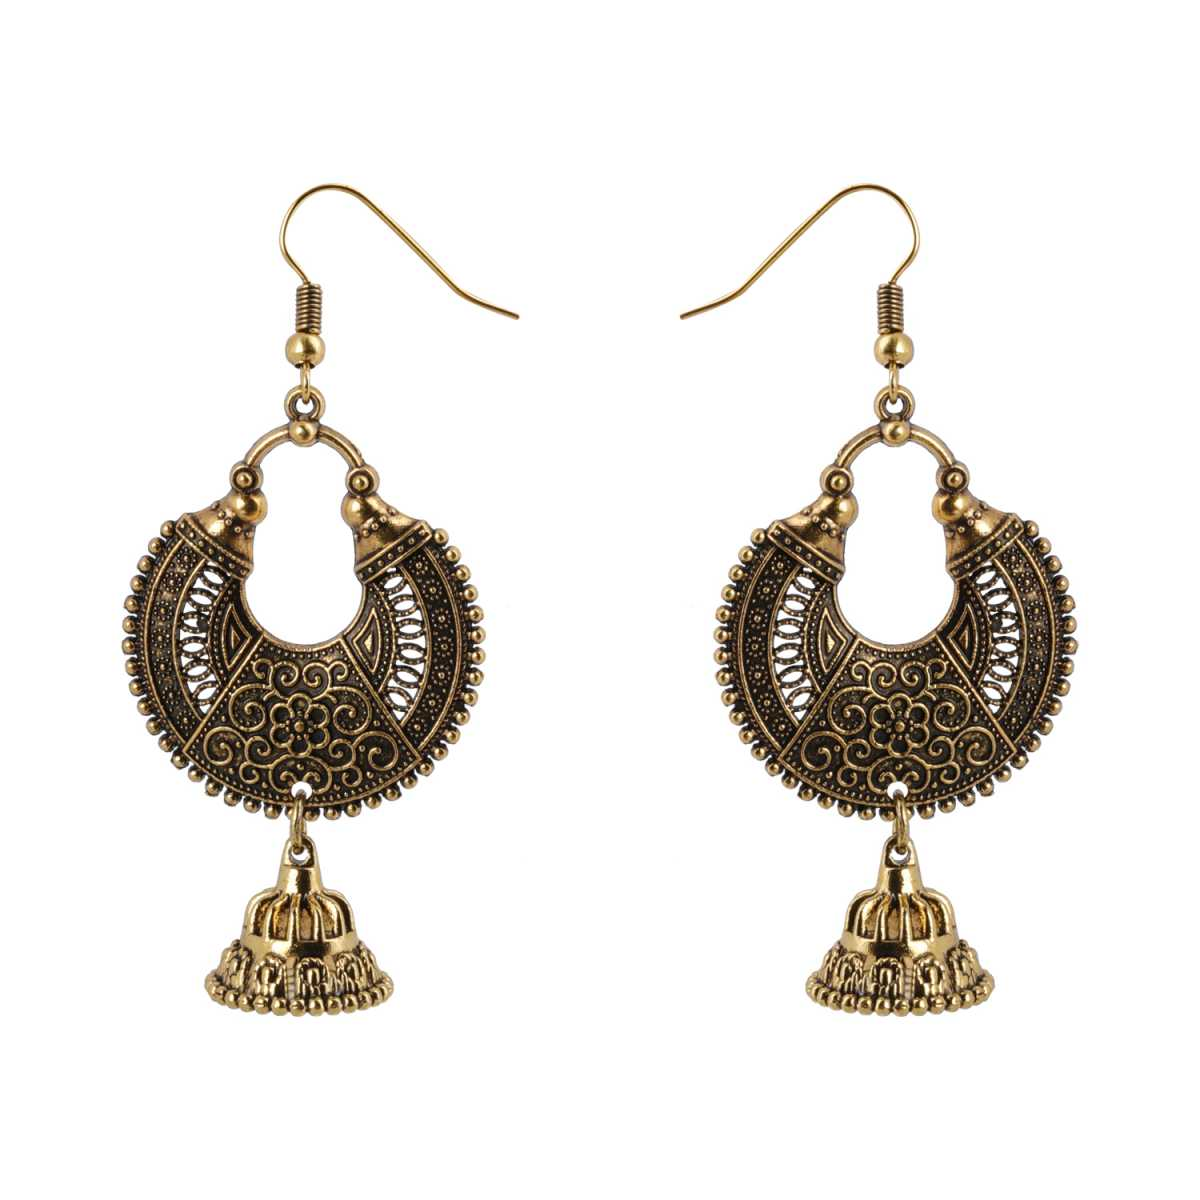 Silver Shine Appealing Golden Chandbali with Small Jhumki Earrings for Women